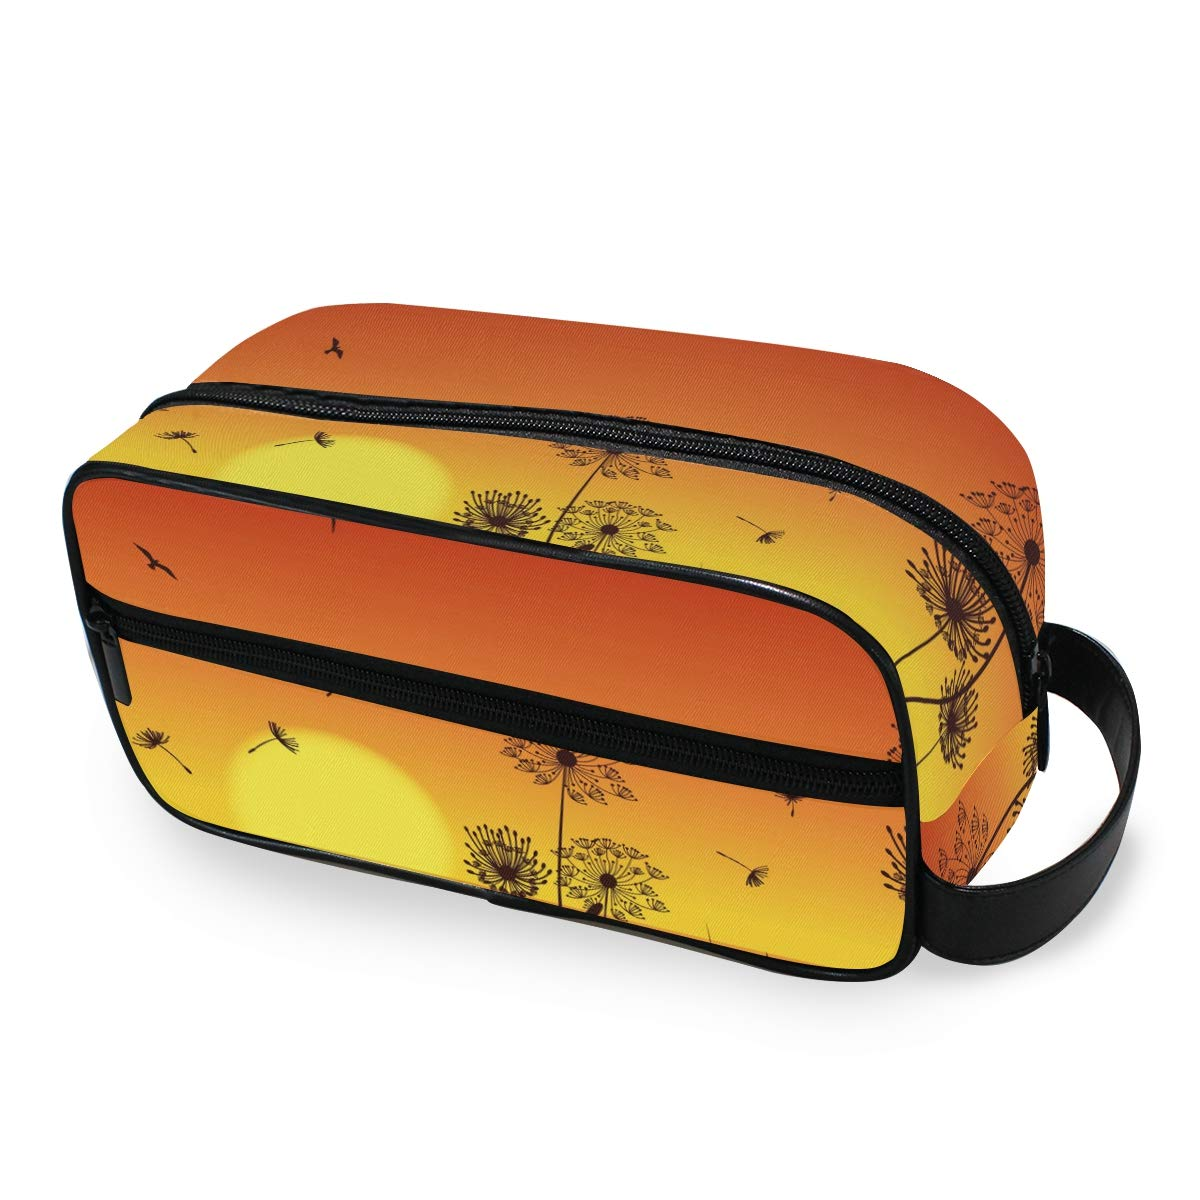 Cosmetic Bag Makeup Case Portable Toiletry Bag Moonlight Dandelion Organizer Accessories Case Tools Case for Trave